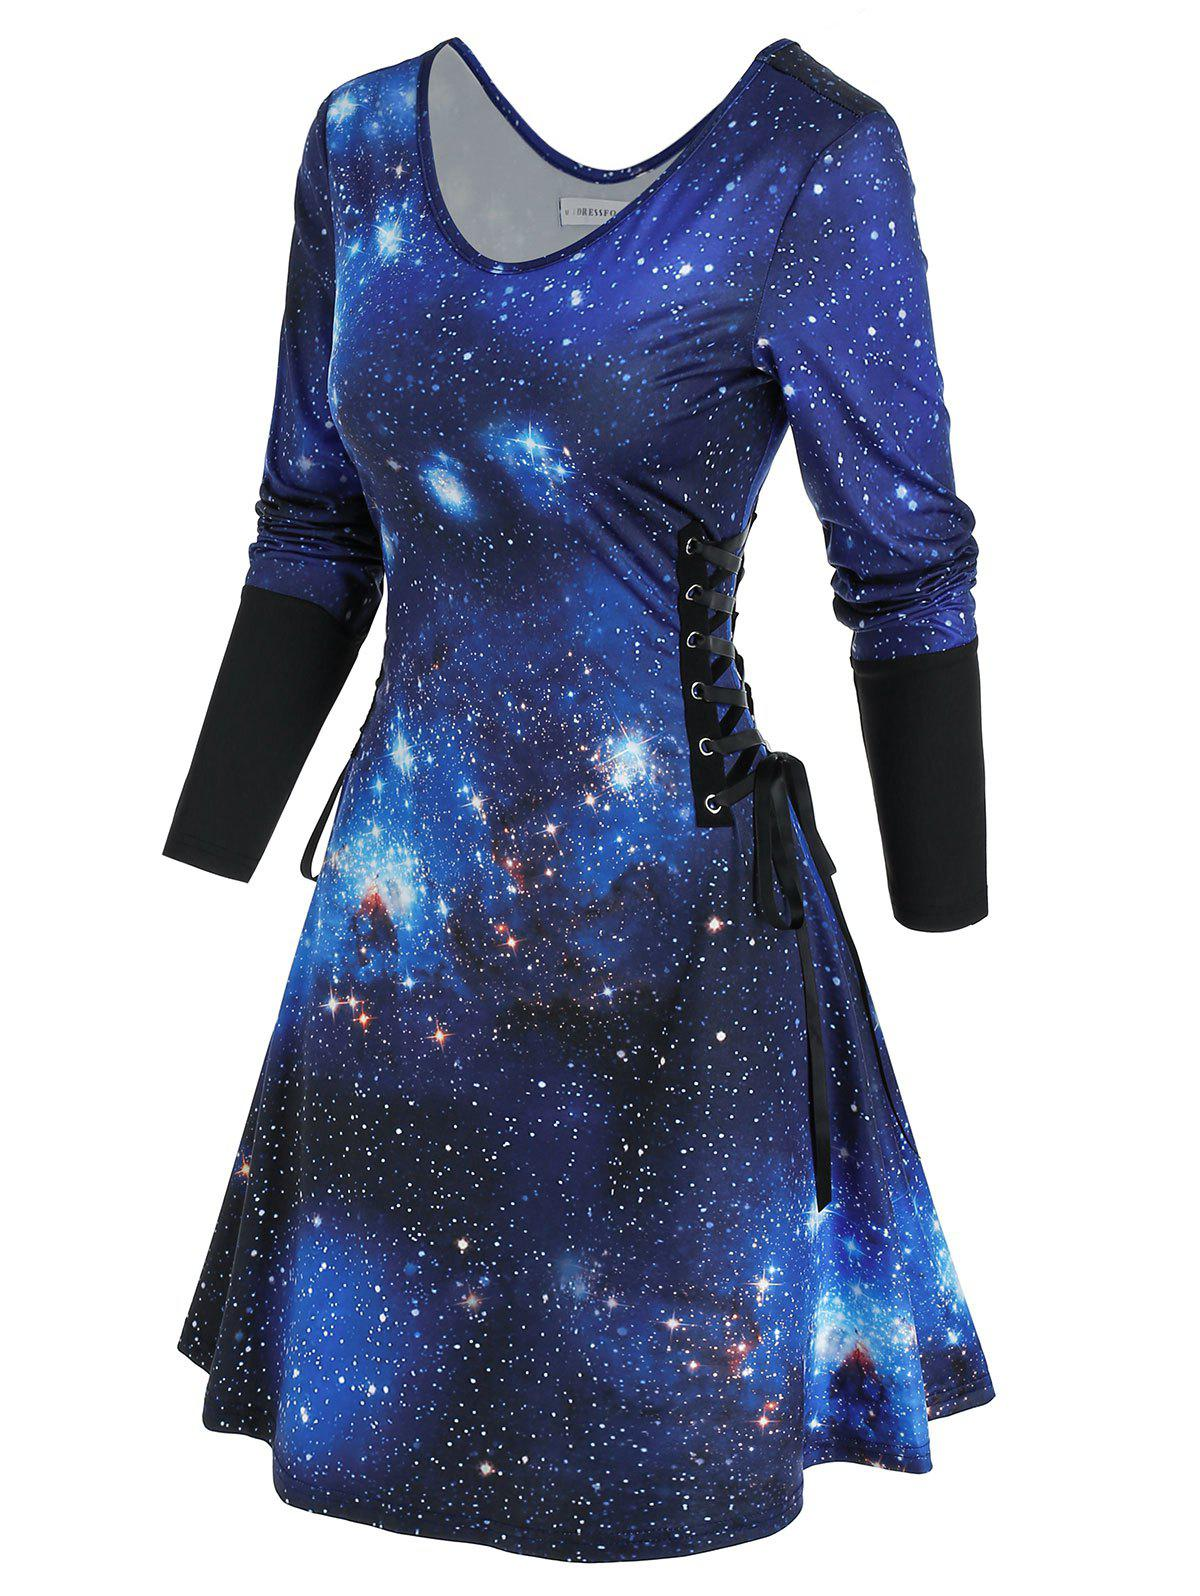 Unique 3D Galaxy Print Lace Up Mini Dress